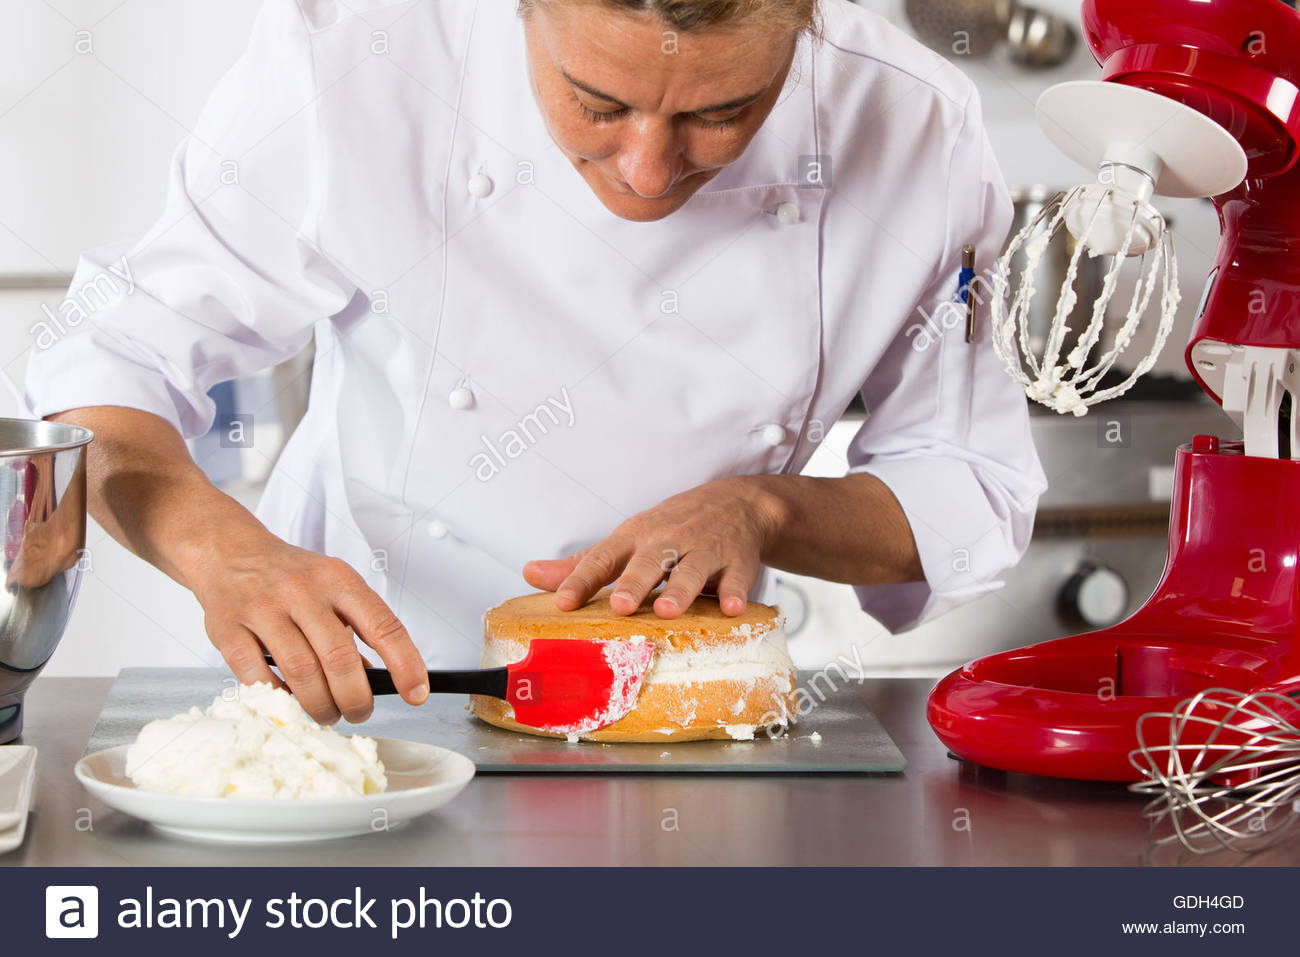 Pastry chef in the kitchen Stock Photo, Royalty Free Image ...